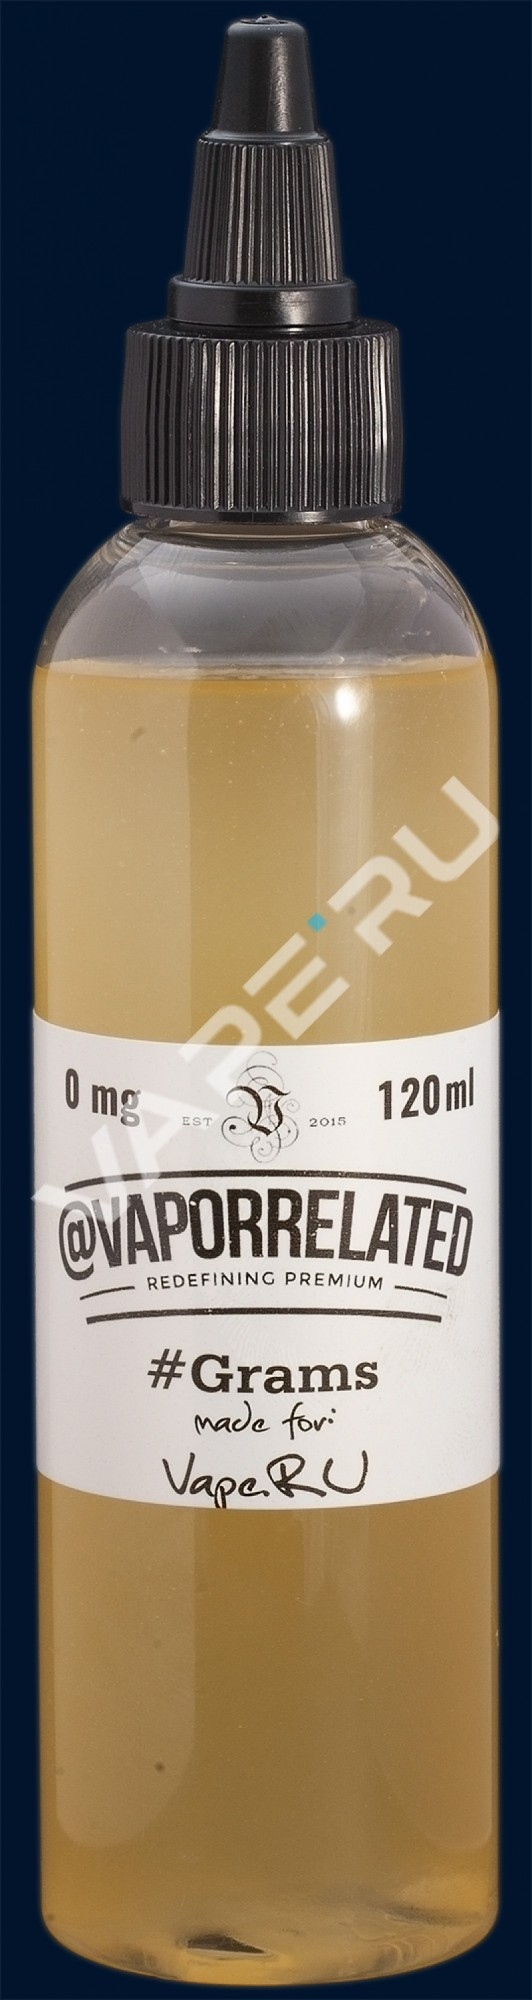 Vapor Related, Grams, 120ml